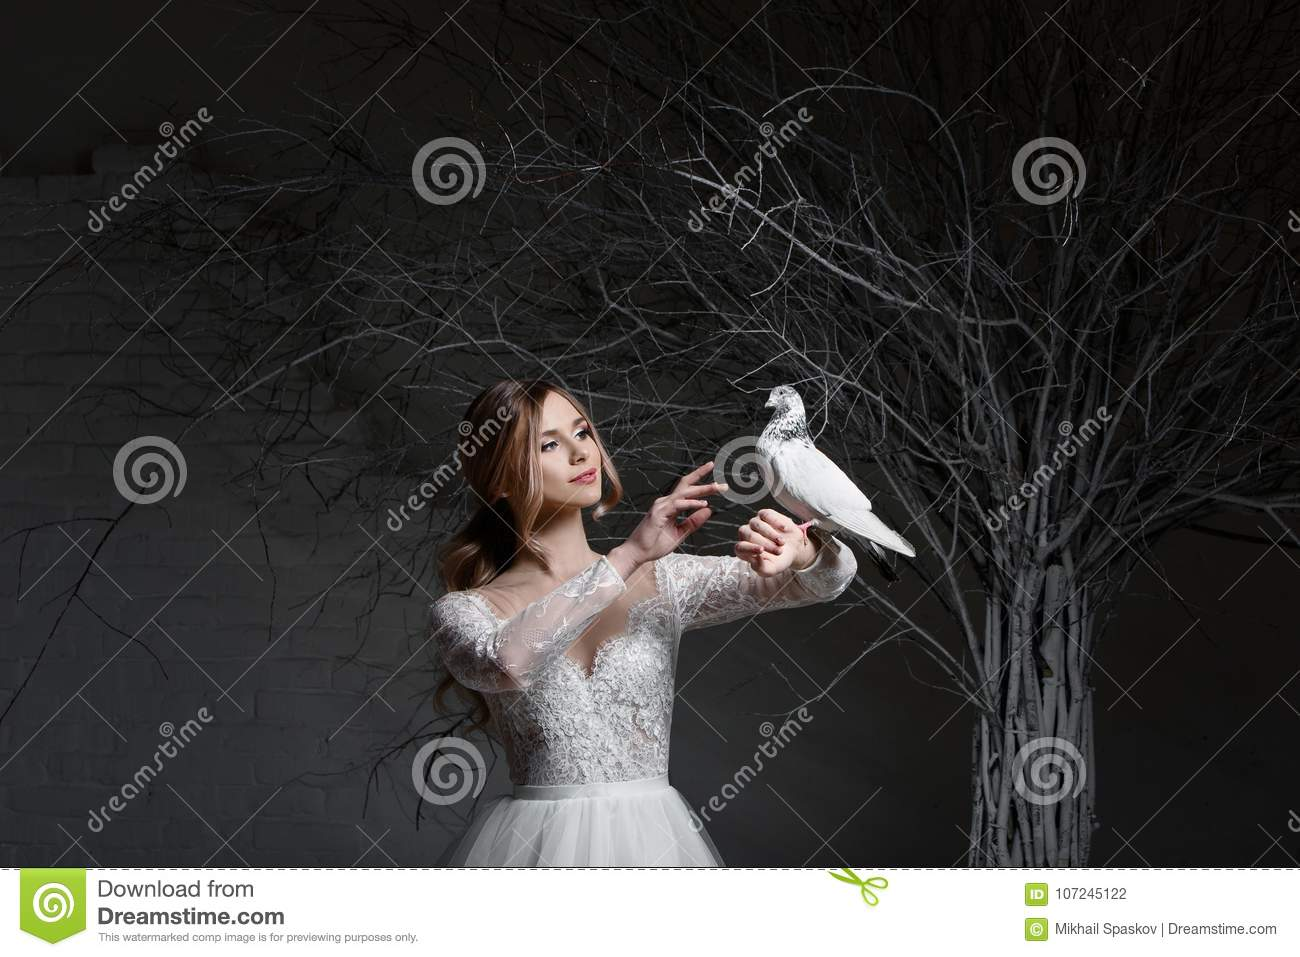 A young blonde bride in white wedding dress